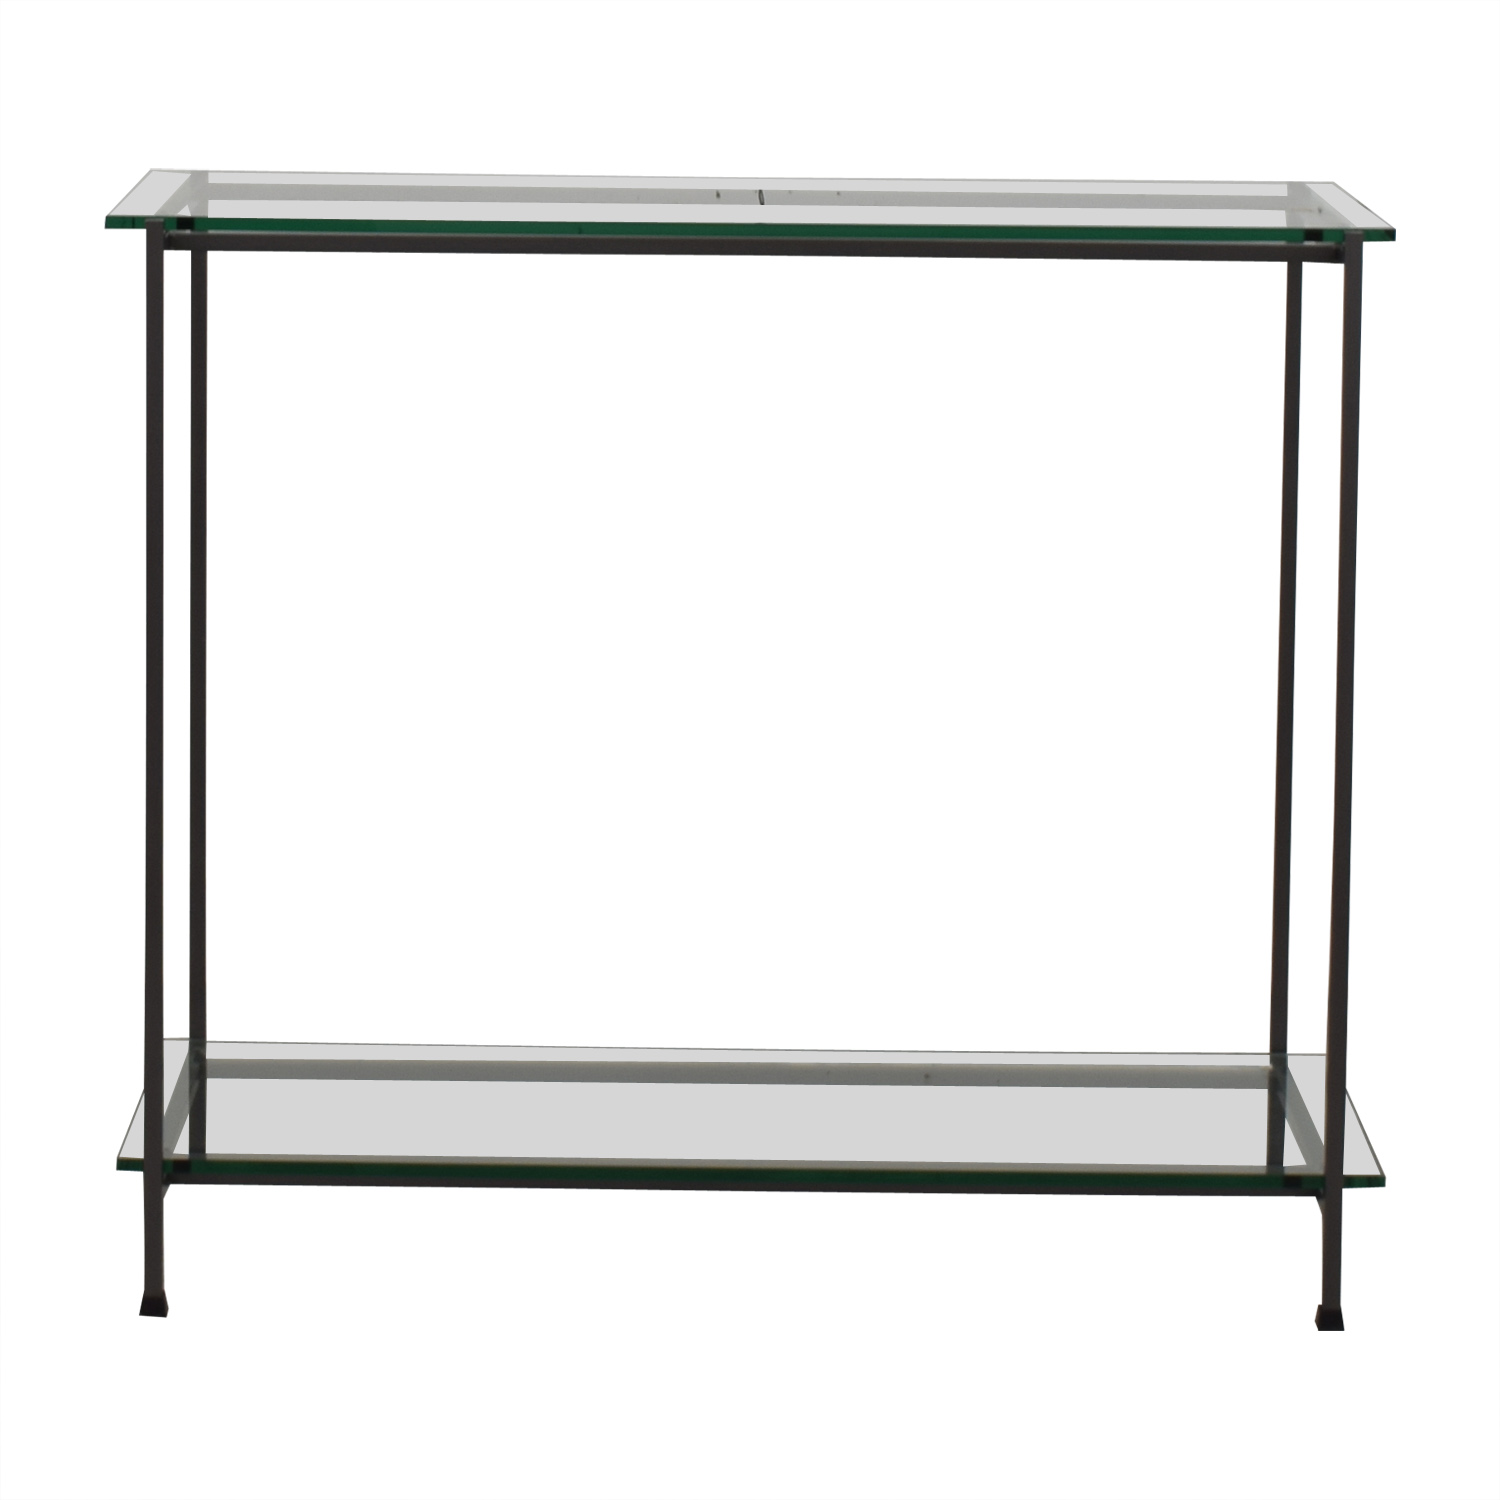 Crate & Barrel Crate & Barrel Glass Console coupon